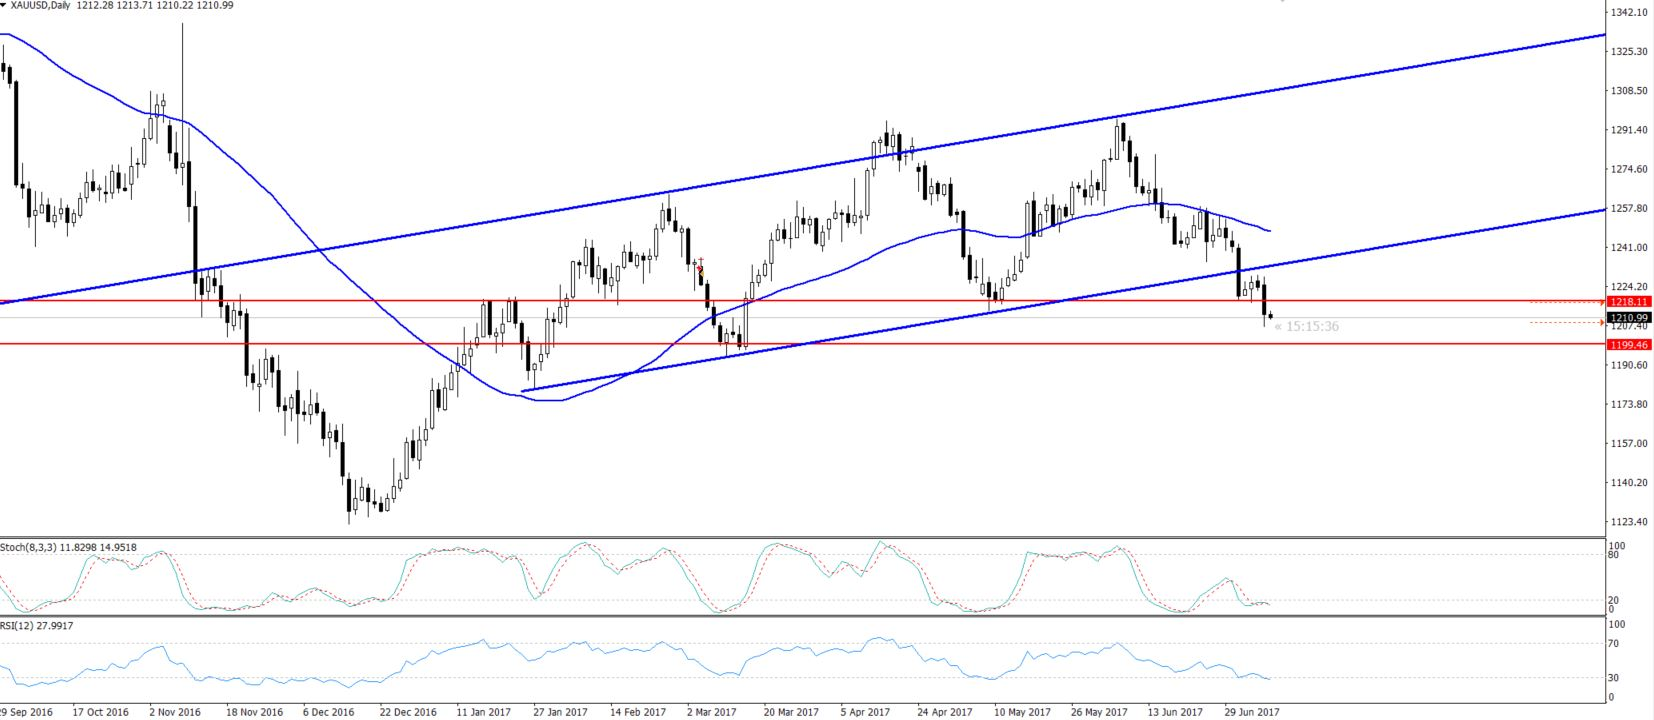 Gold - Daily Chart - Double Bottom Breakout